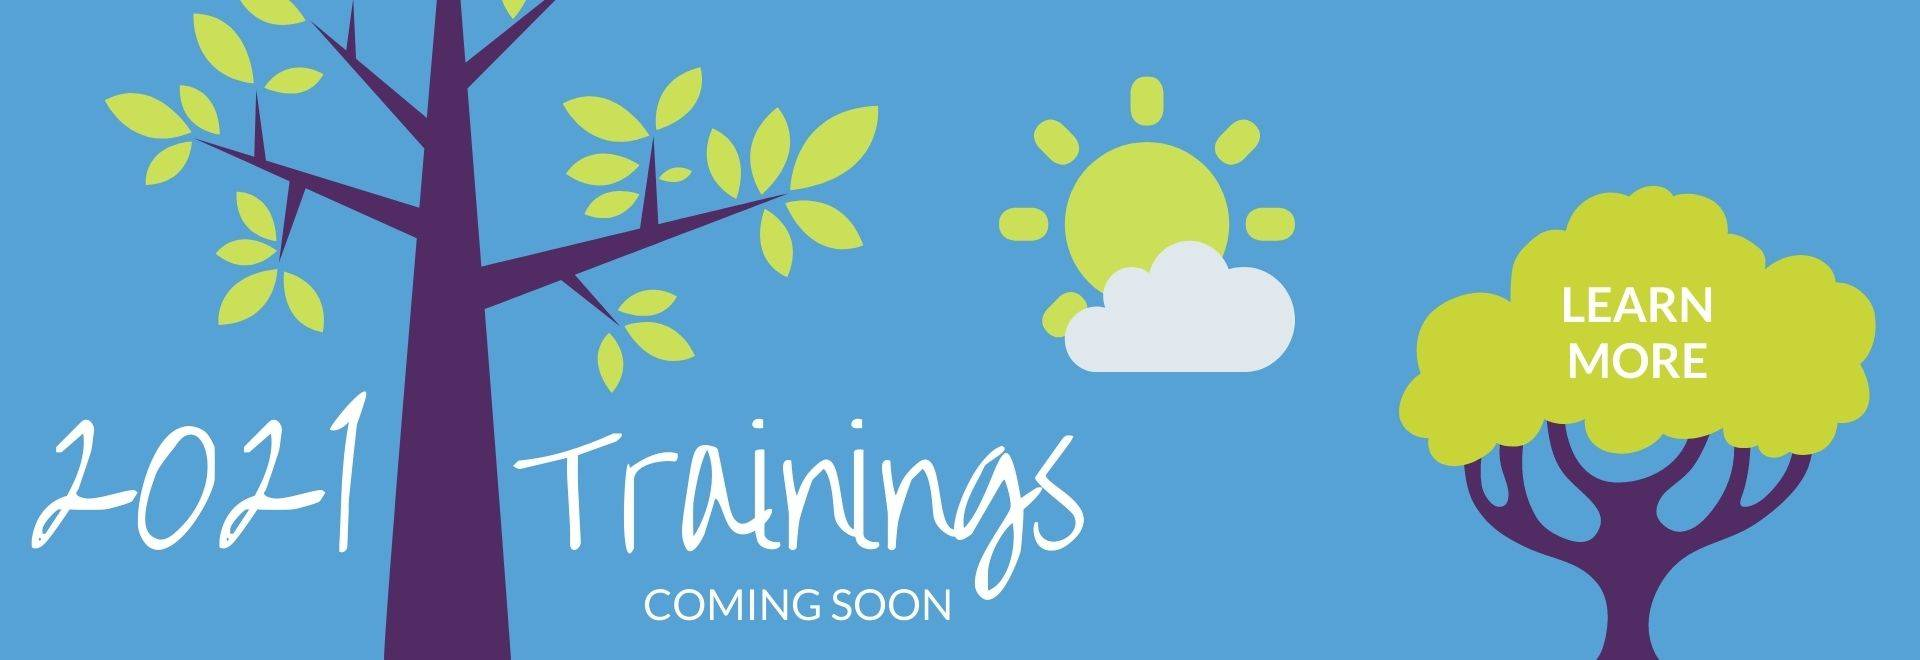 Click here for trainings and events